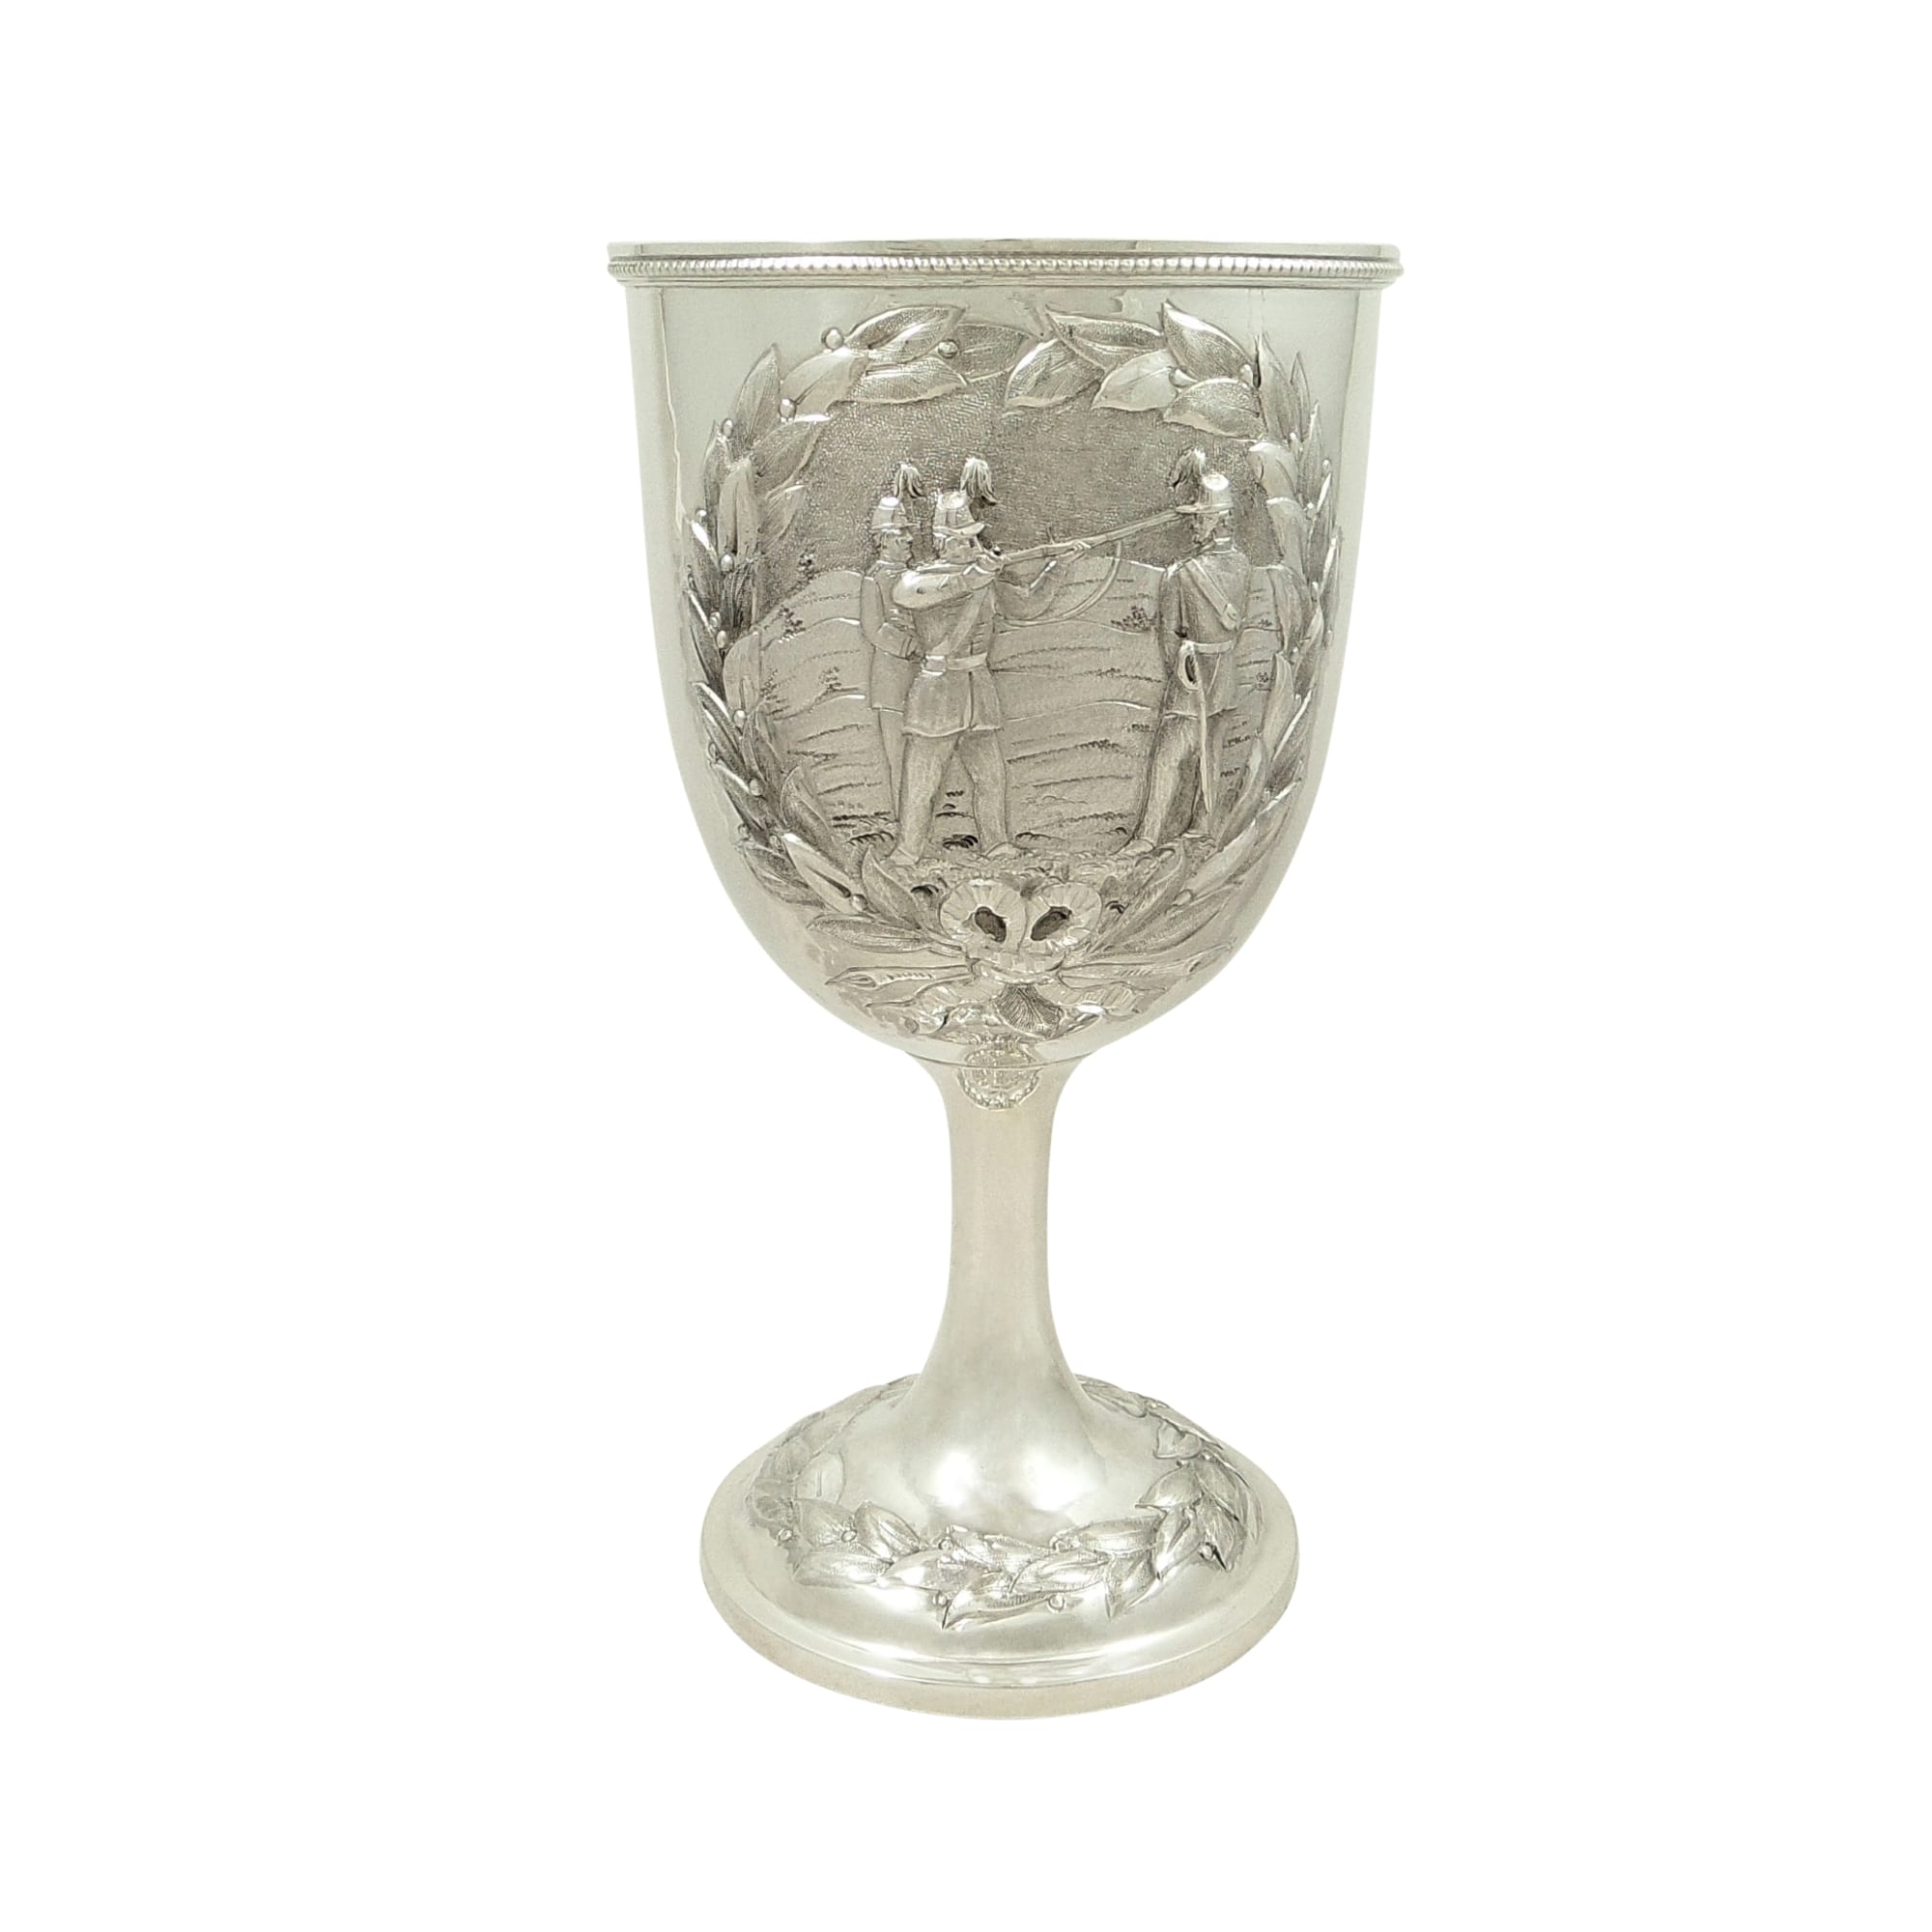 Antique Victorian Sterling Silver Goblet 1865 – Soldiers with Muskets